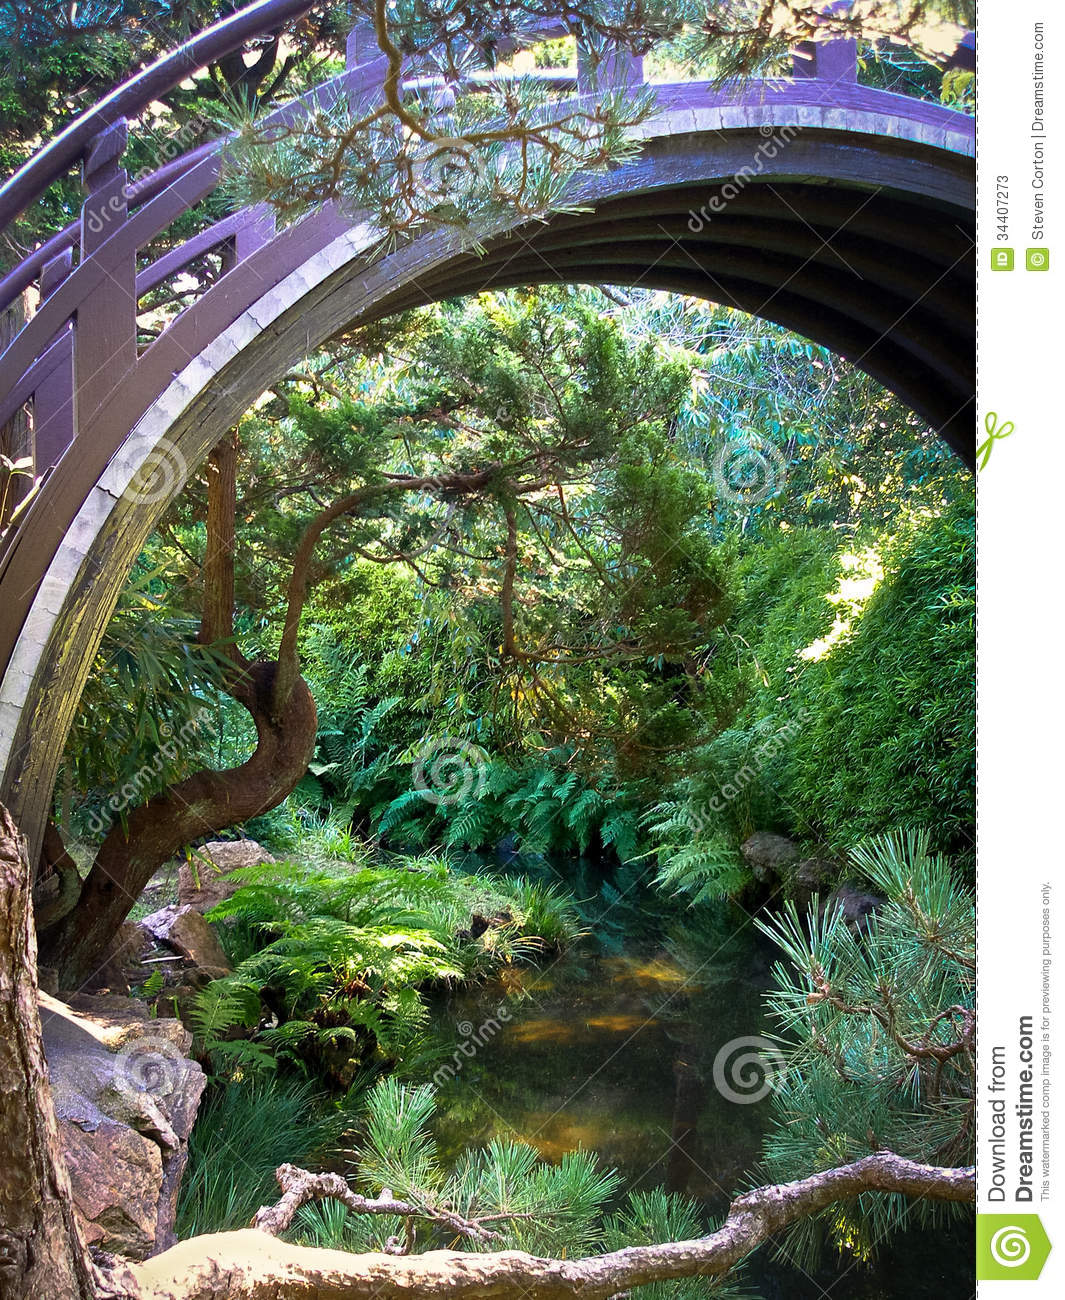 Japanese tea garden pond and bridge stock photos image for Koi pond japanese tea garden san francisco